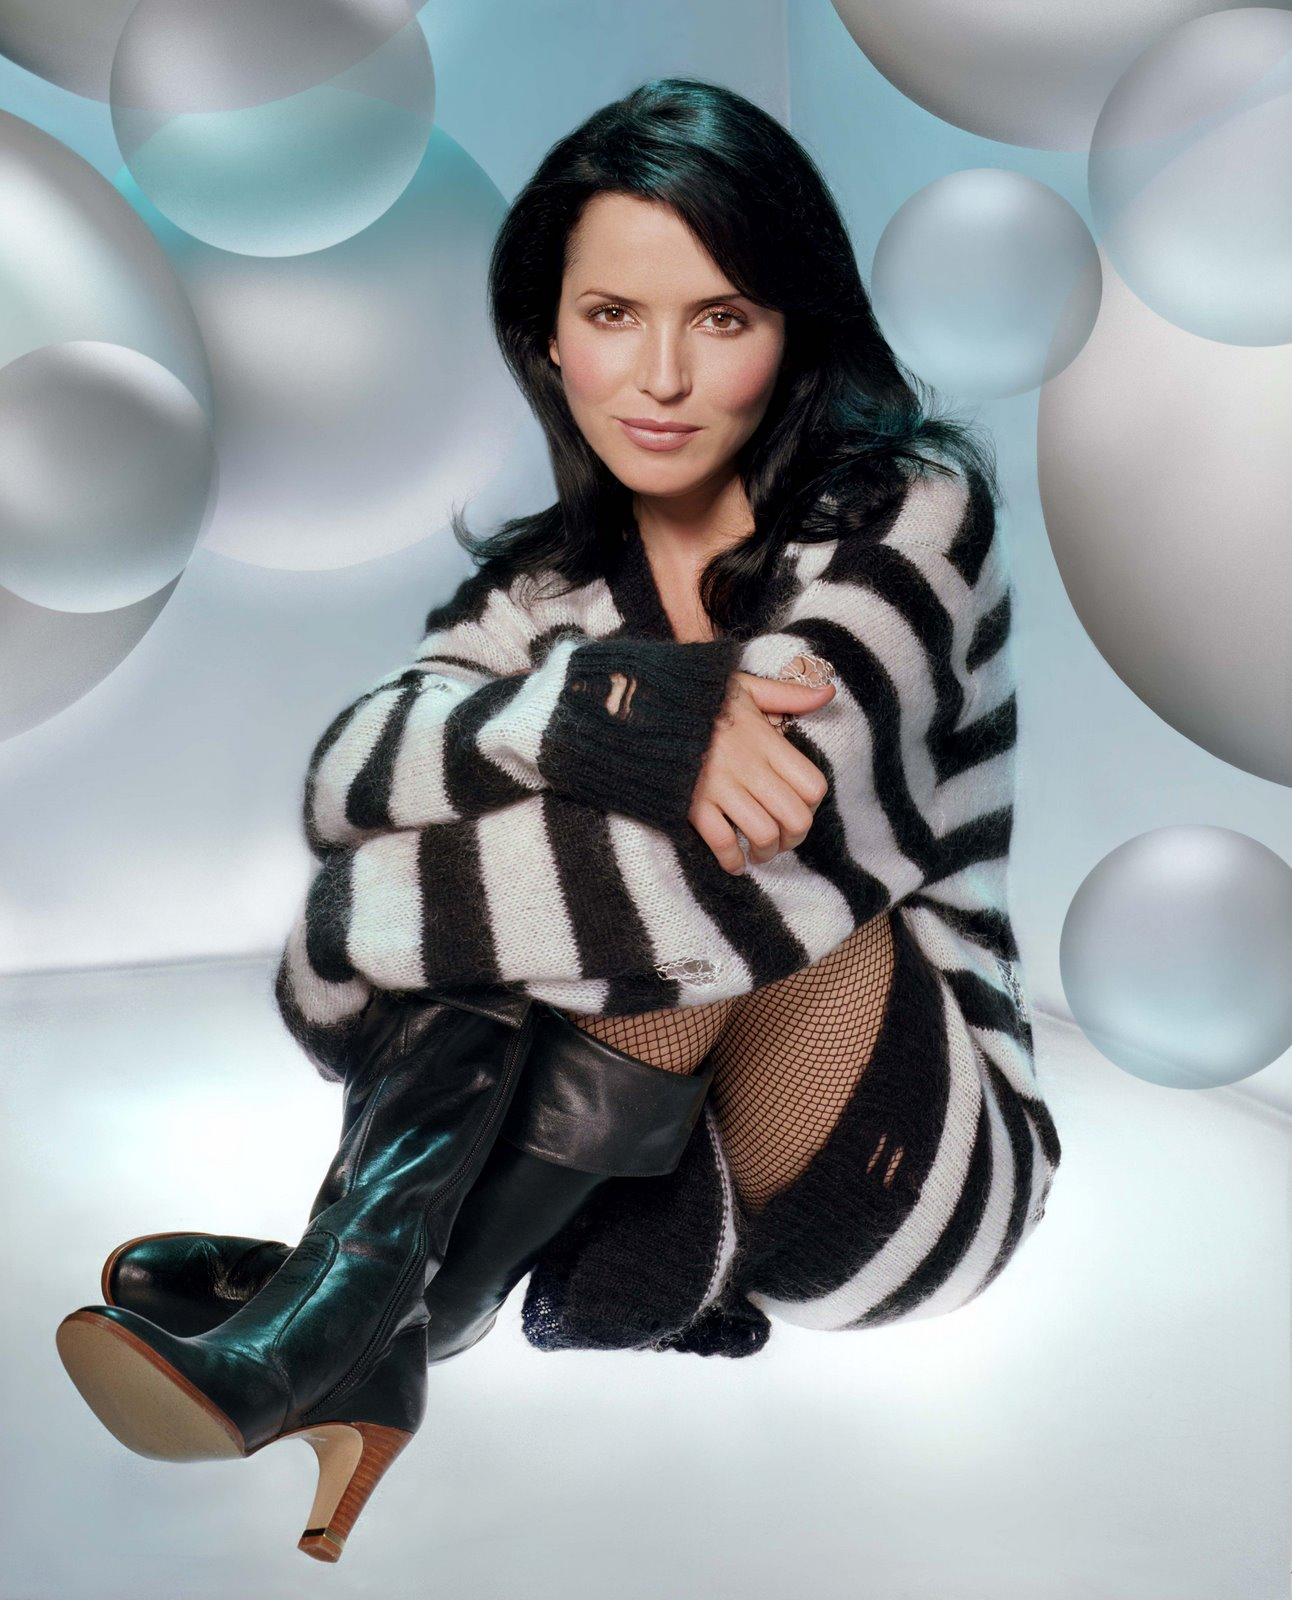 World's Most Beautiful Women: Andrea Corr